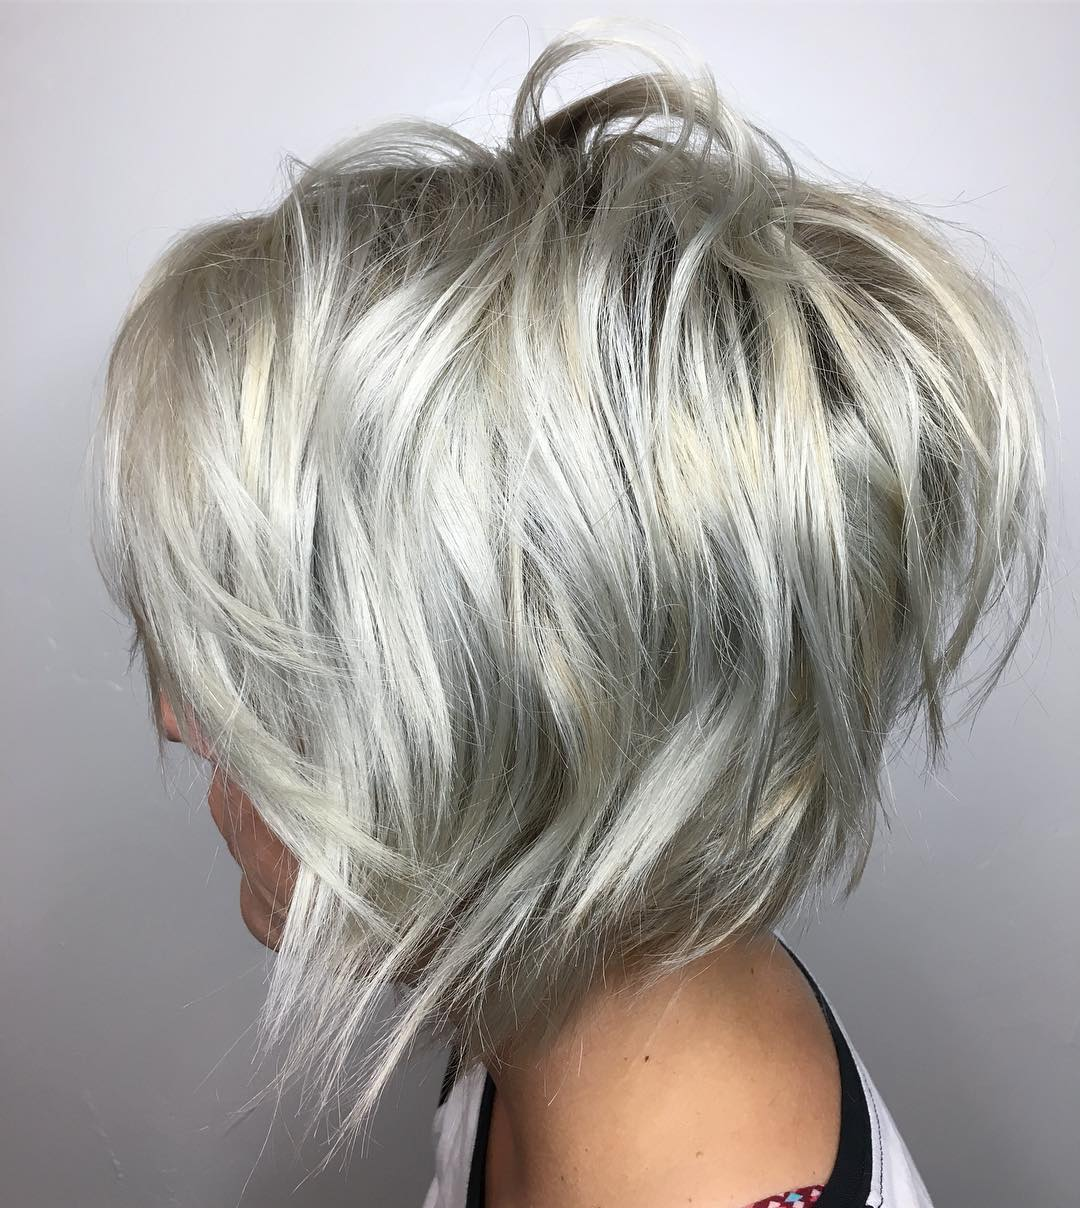 Inverted Layered Silver Shaggy Bob